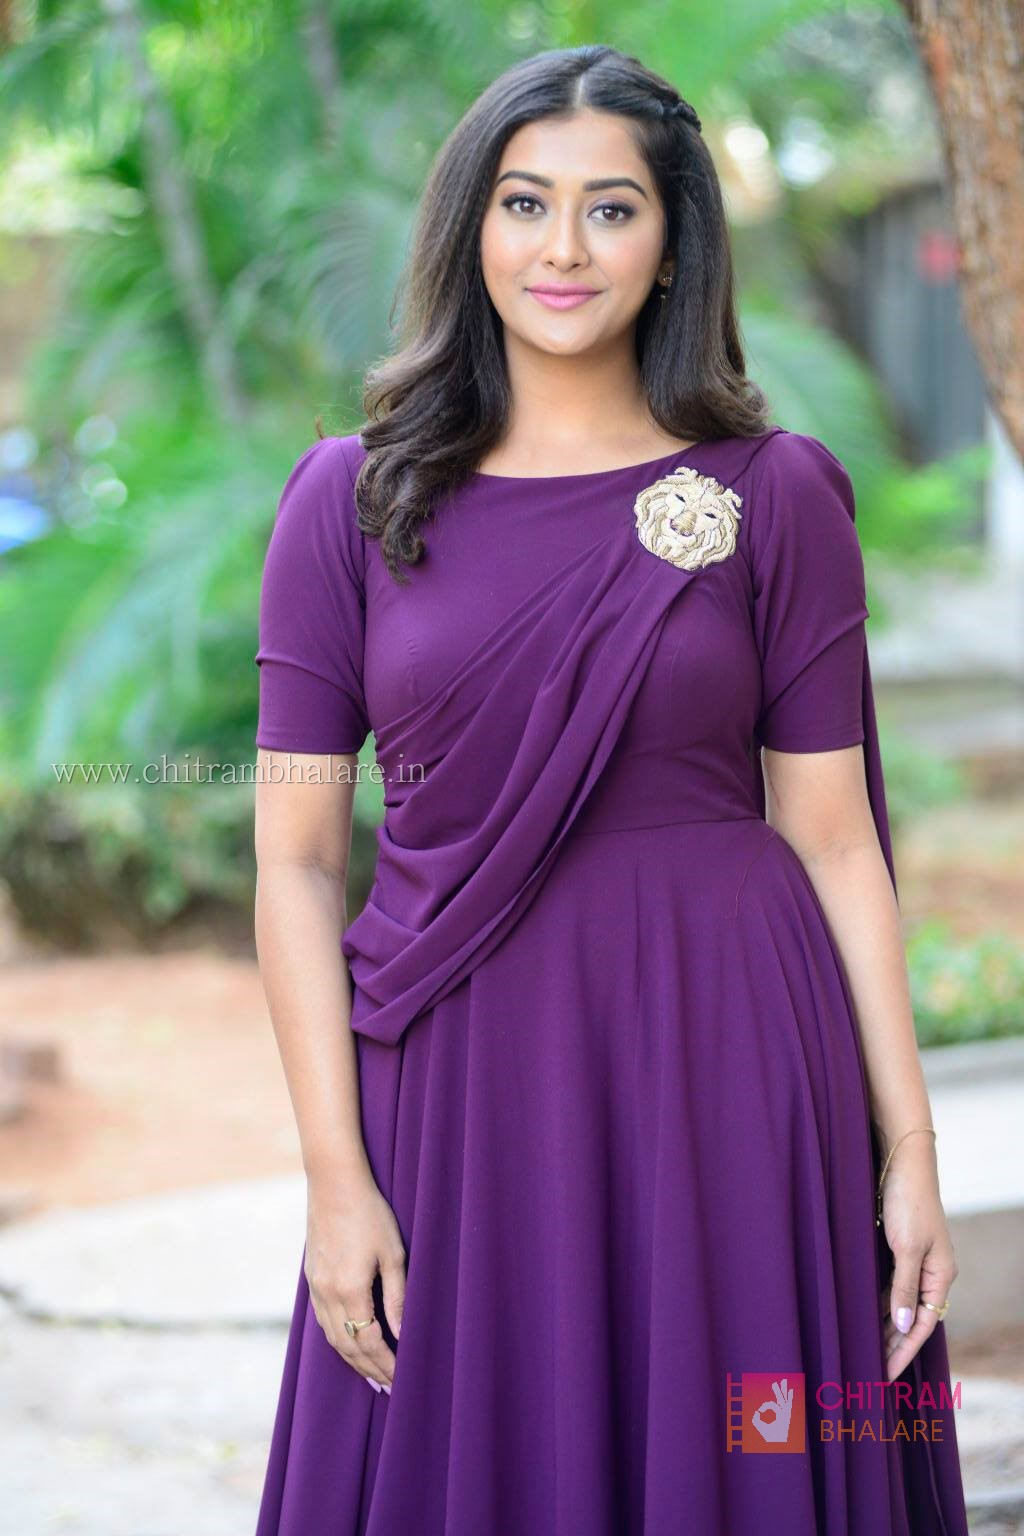 Pooja Jhaveri Hot Images and sexy photo shoot